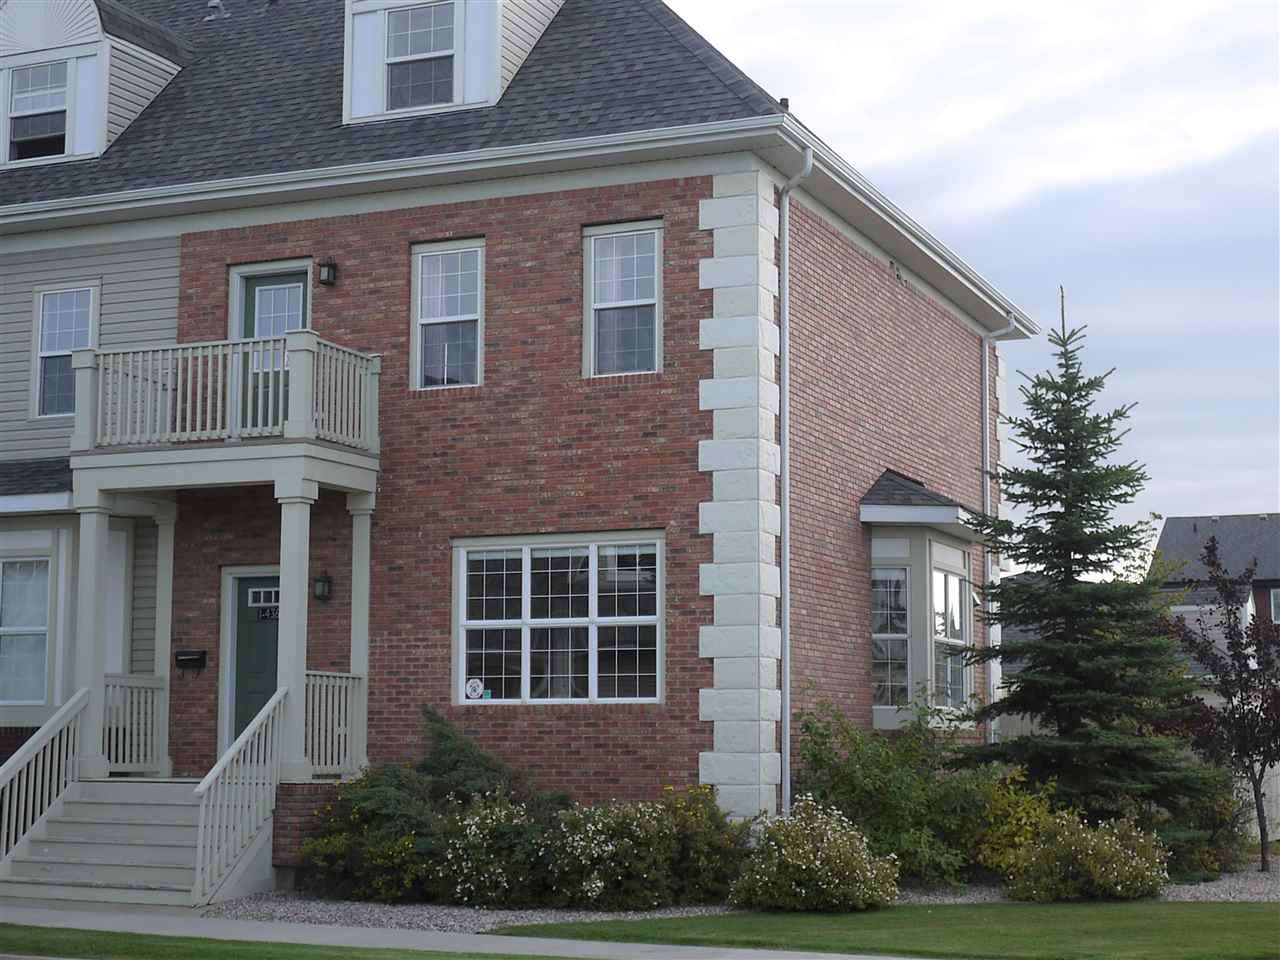 MLS® listing #E4172167 for sale located at 1 4367 Veterans Way NW